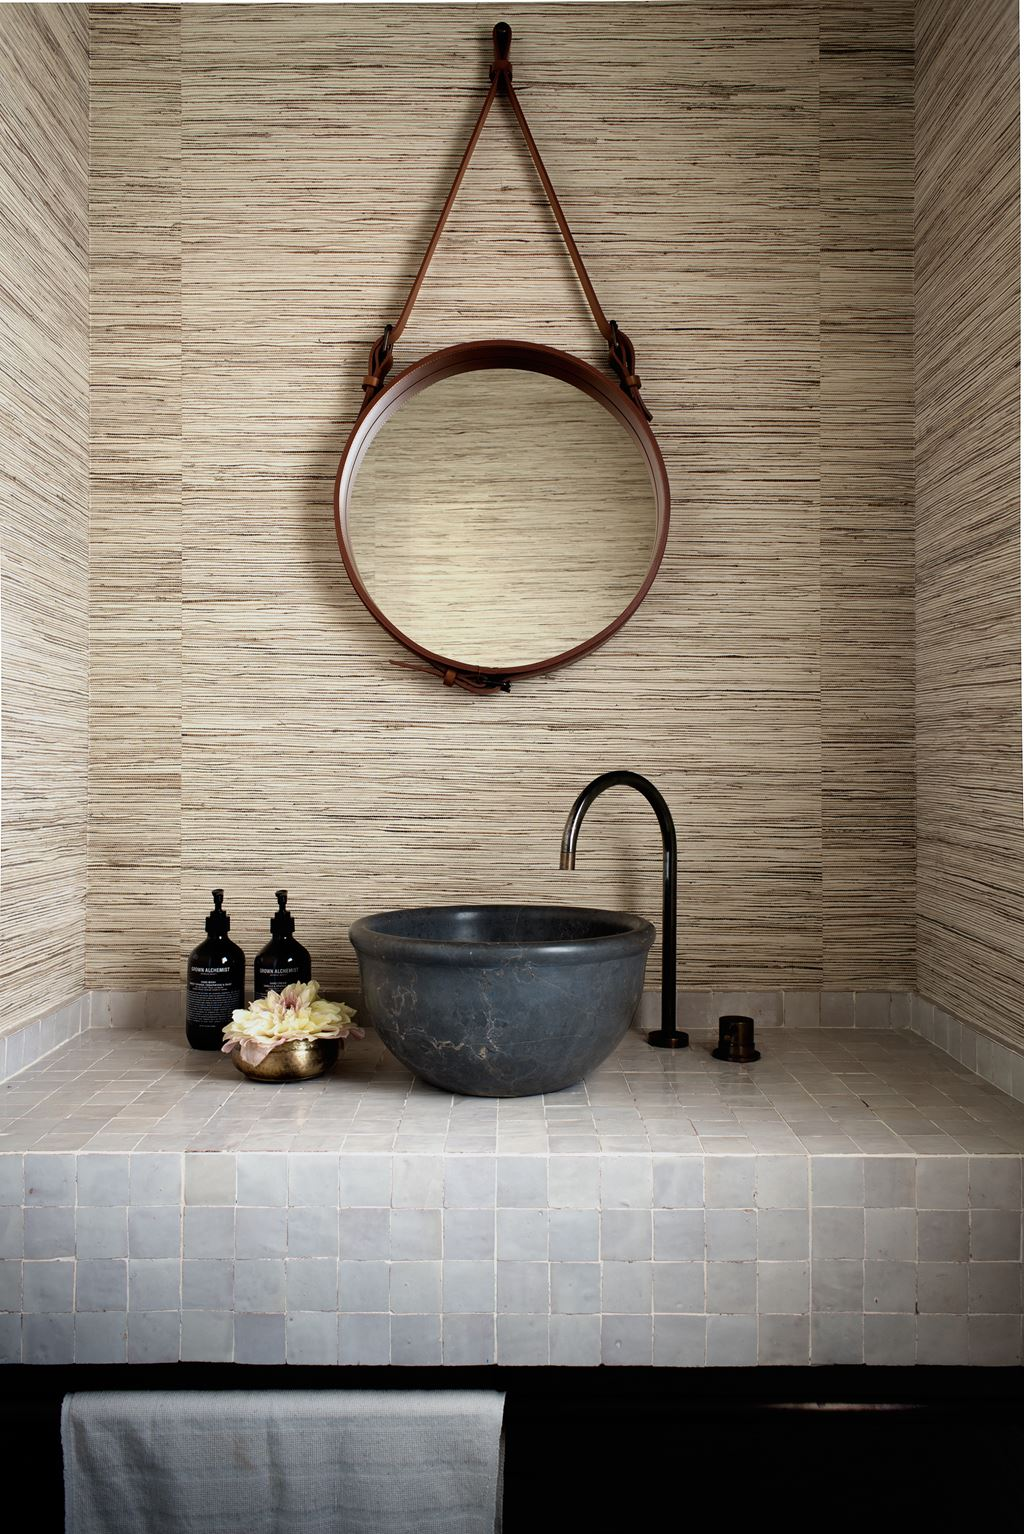 Australian Ocean Shore Private House Design Review. Another shower with rustic Oriental tub for face and hand washing